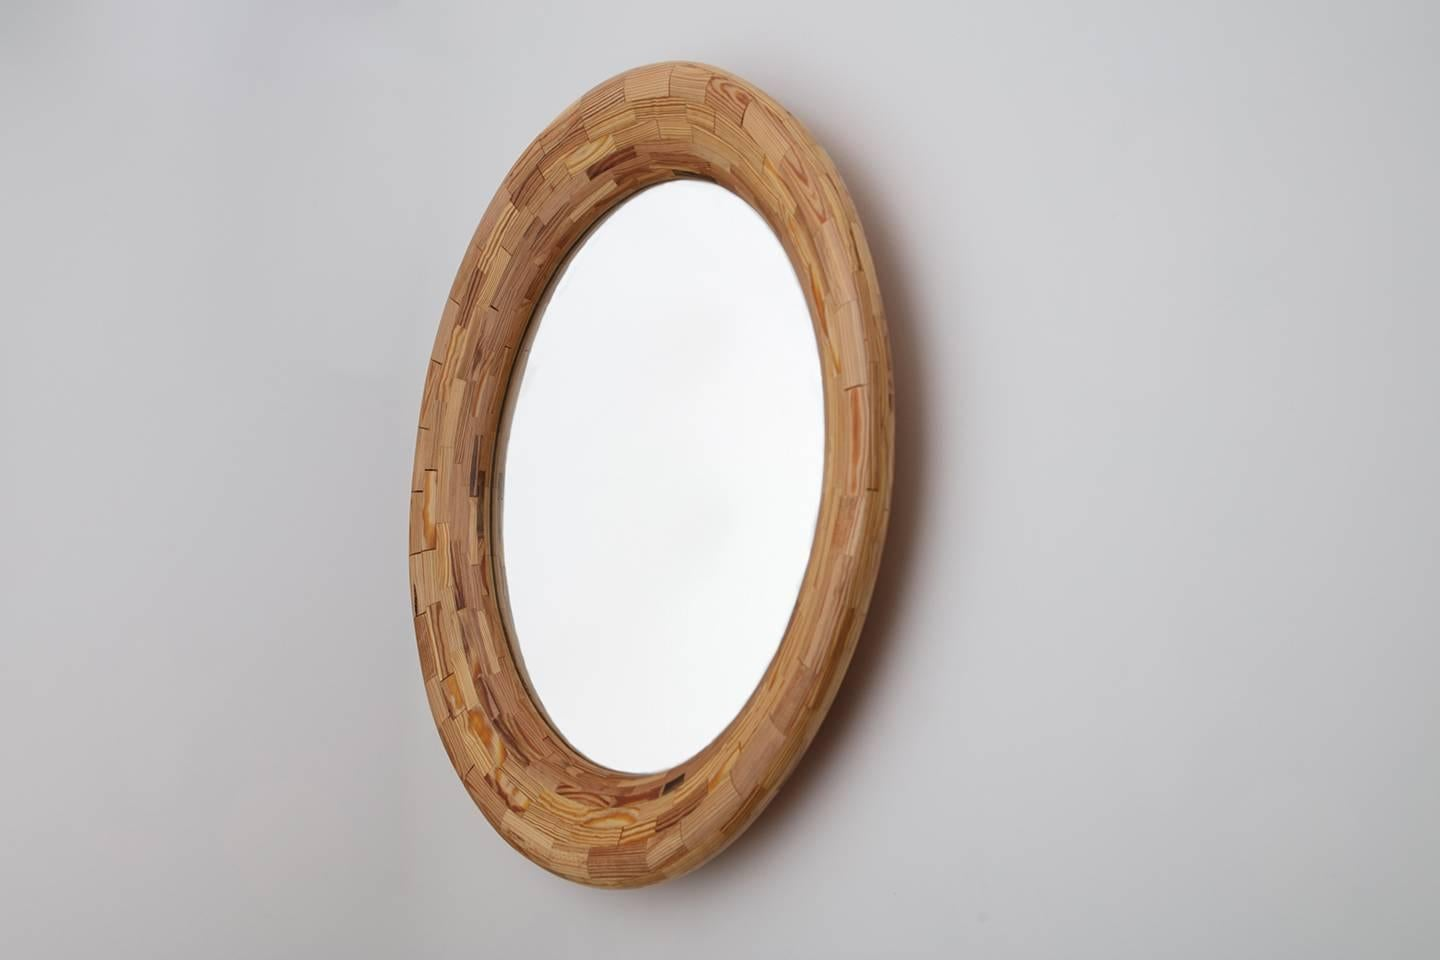 Contemporary American Round Wall Mirror, Heart Pine